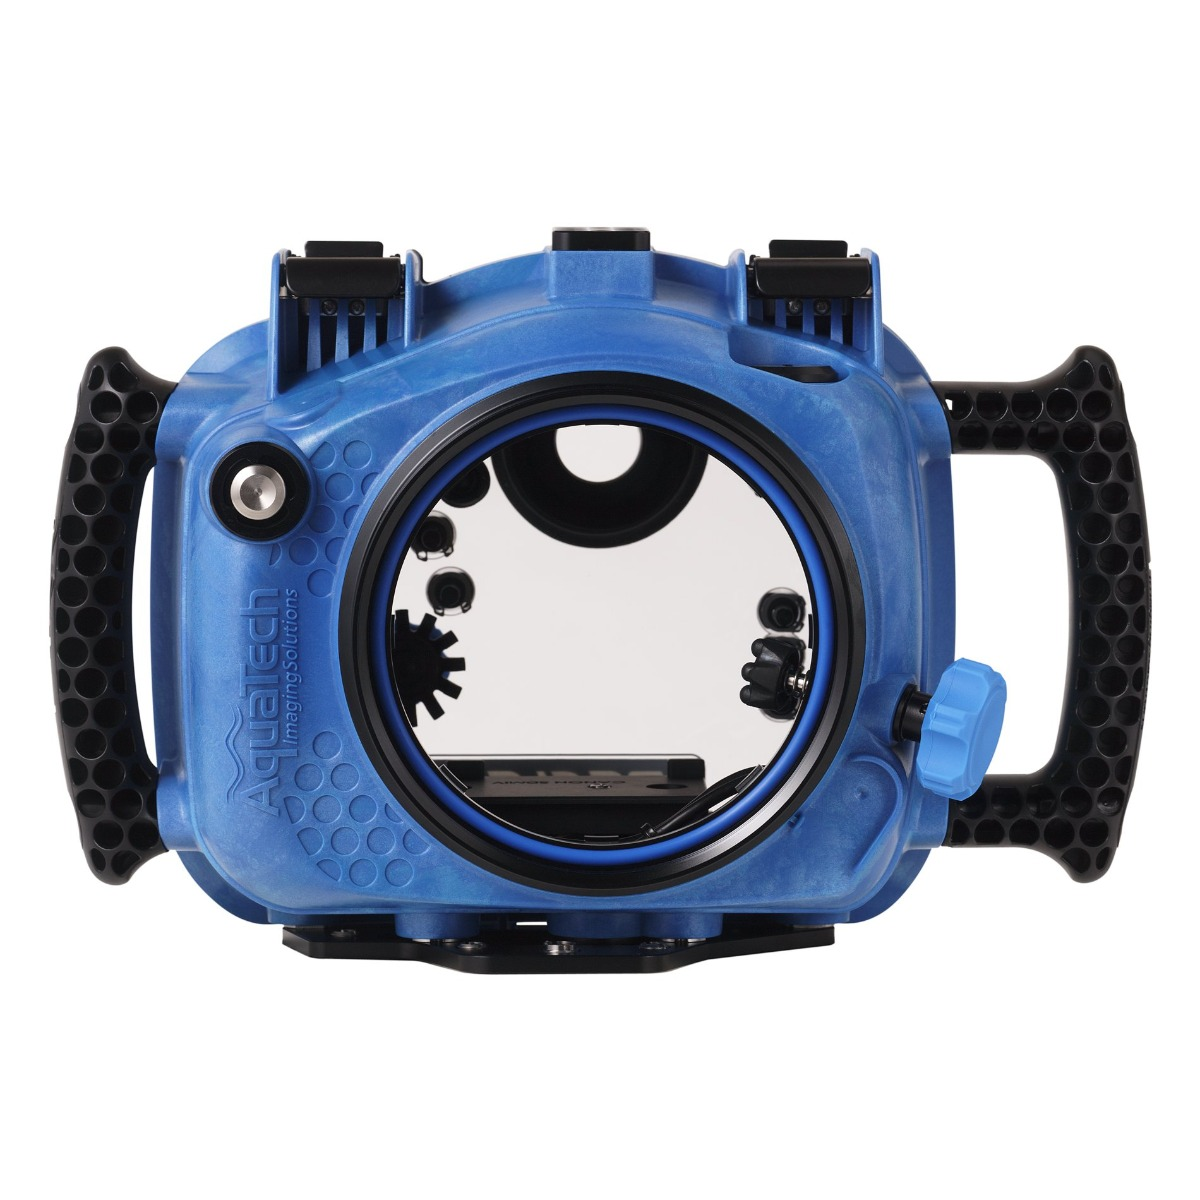 AquaTech Reflex Water Housing for Canon 5d MkIV